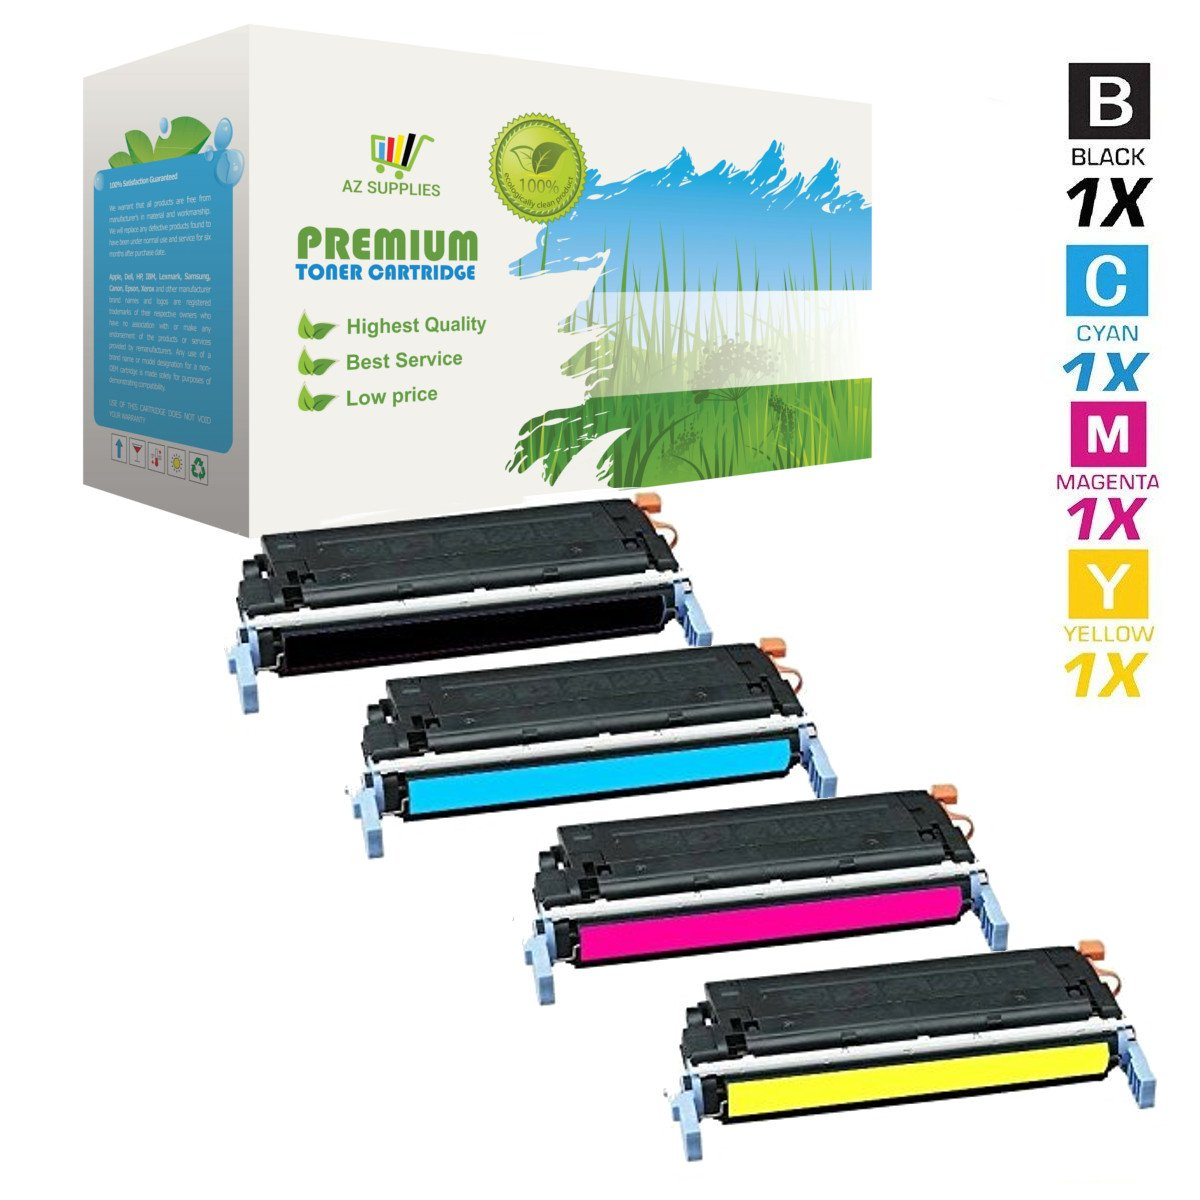 AZ Supplies © Re-Manufactured Replacement Toner Cartridges for HP 641A, C9720A, C9721A, C9722A, C9723A, 4 Color Set for use in HP Color LaserJet 4600,4600dn,4600hdn,4600n,4650,4650dn,4650dtn,4650n